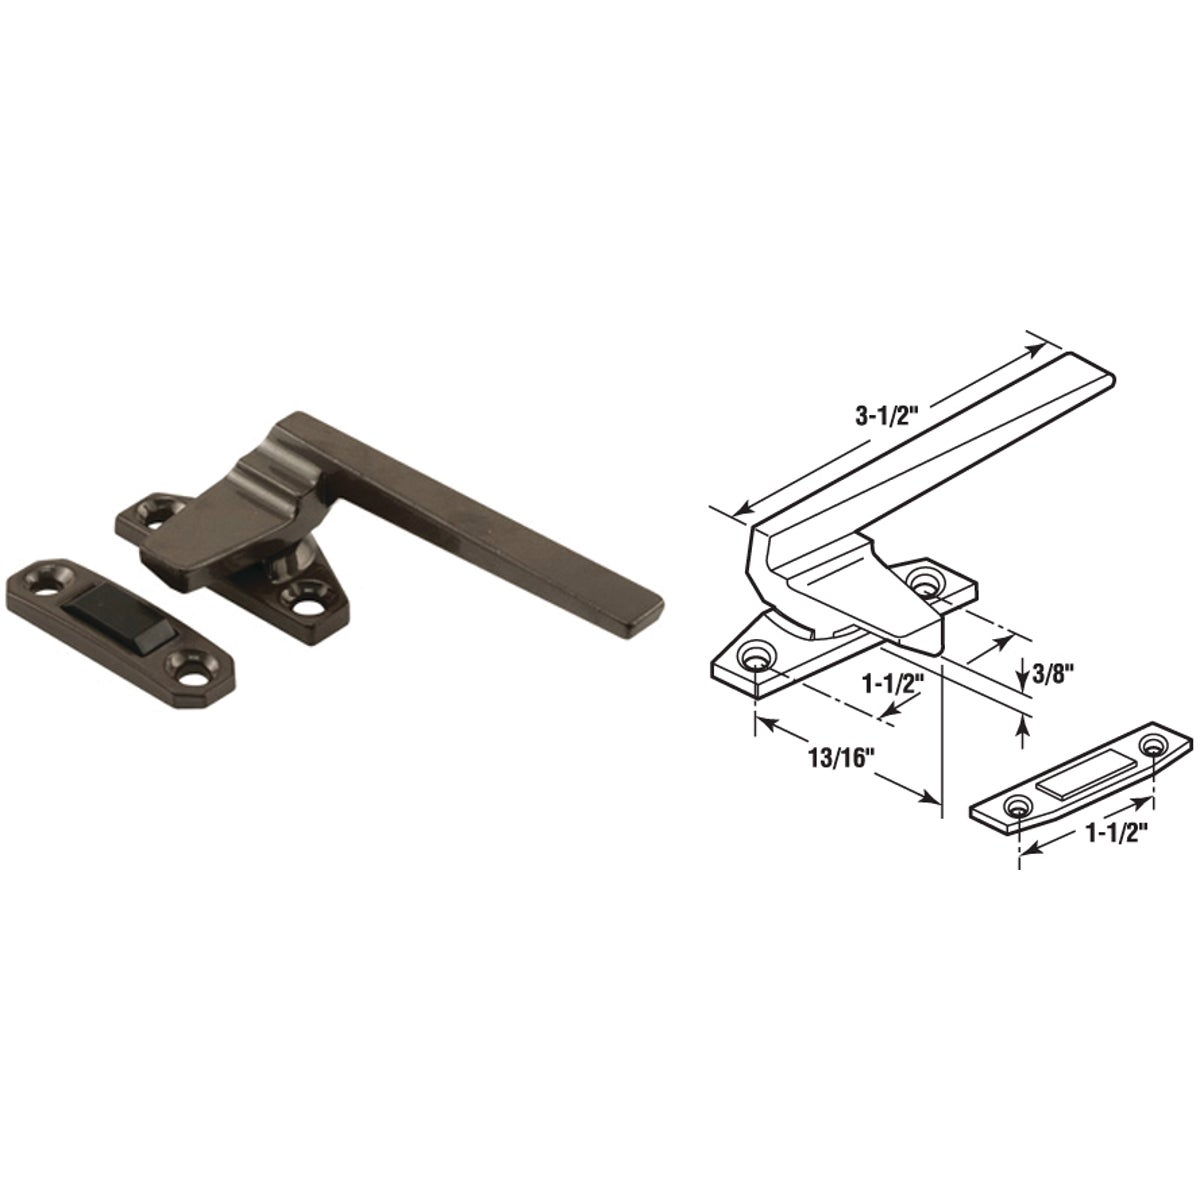 CASEMENT LOCKING HANDLE - 171924-L by Prime Line Products